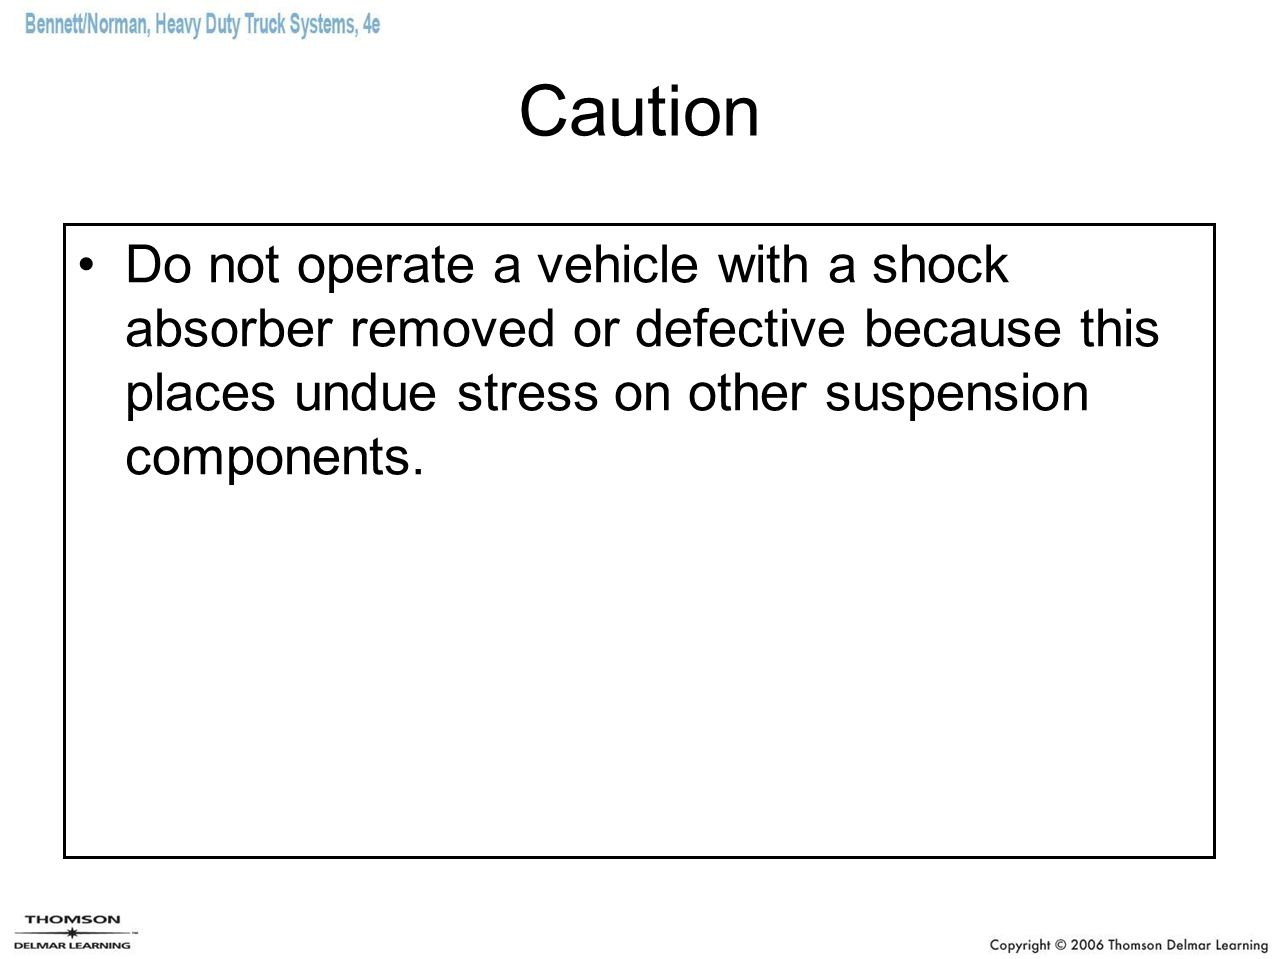 Caution Do not operate a vehicle with a shock absorber removed or defective because this places undue stress on other suspension components.